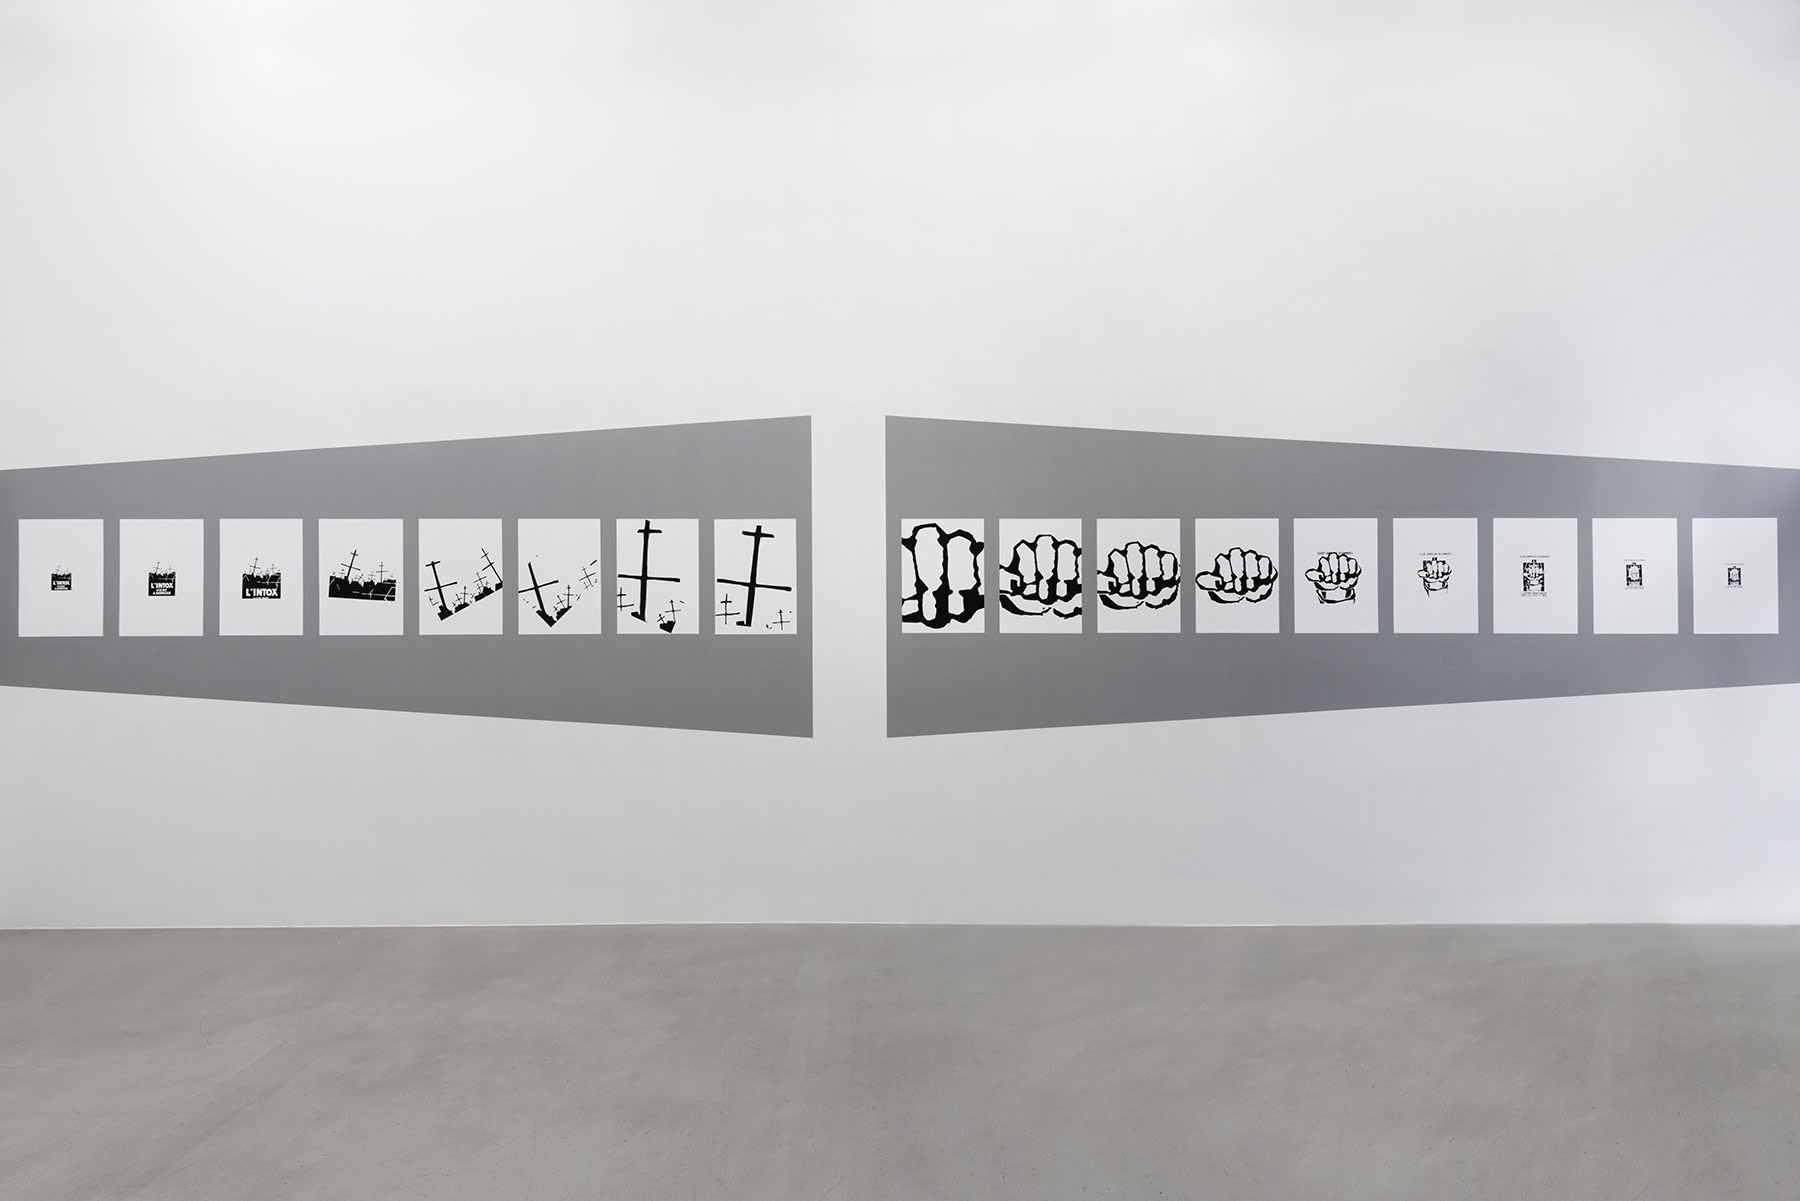 17 ink drawings on paper are displayed horizontally on a gallery wall on top of a grey quadrilateral background.